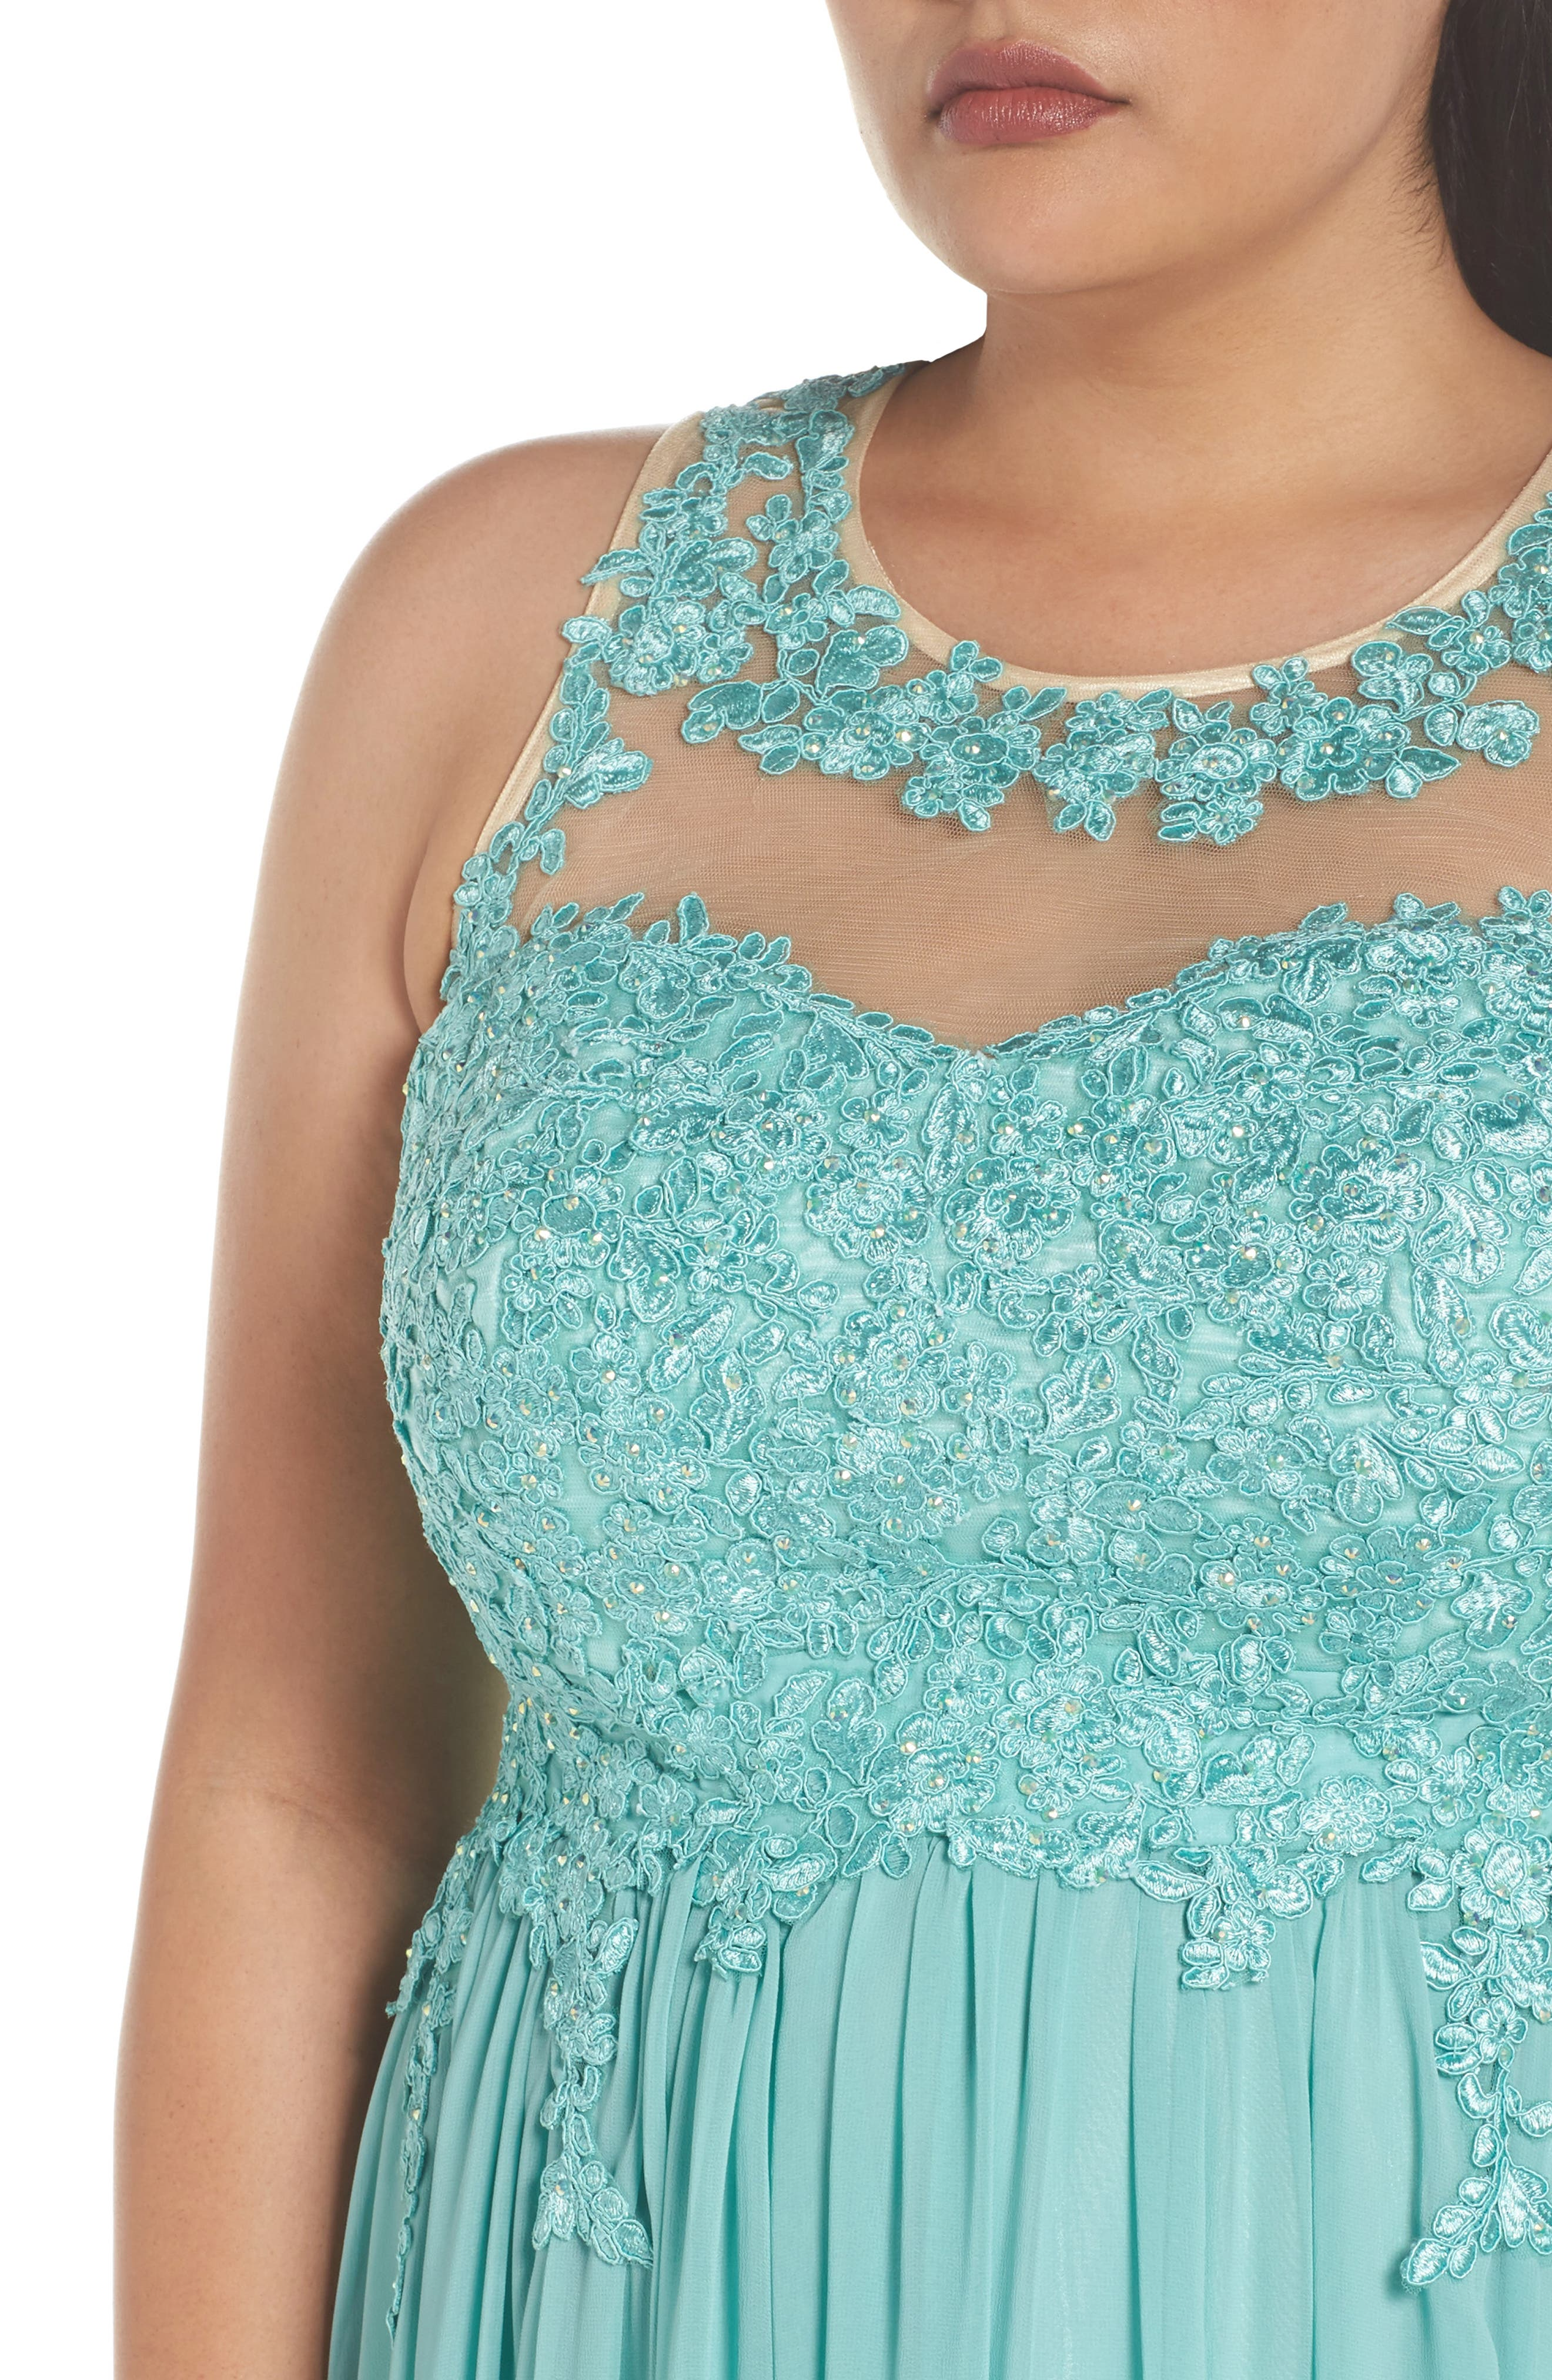 Embellished A-Line Chiffon Gown,                             Alternate thumbnail 4, color,                             330